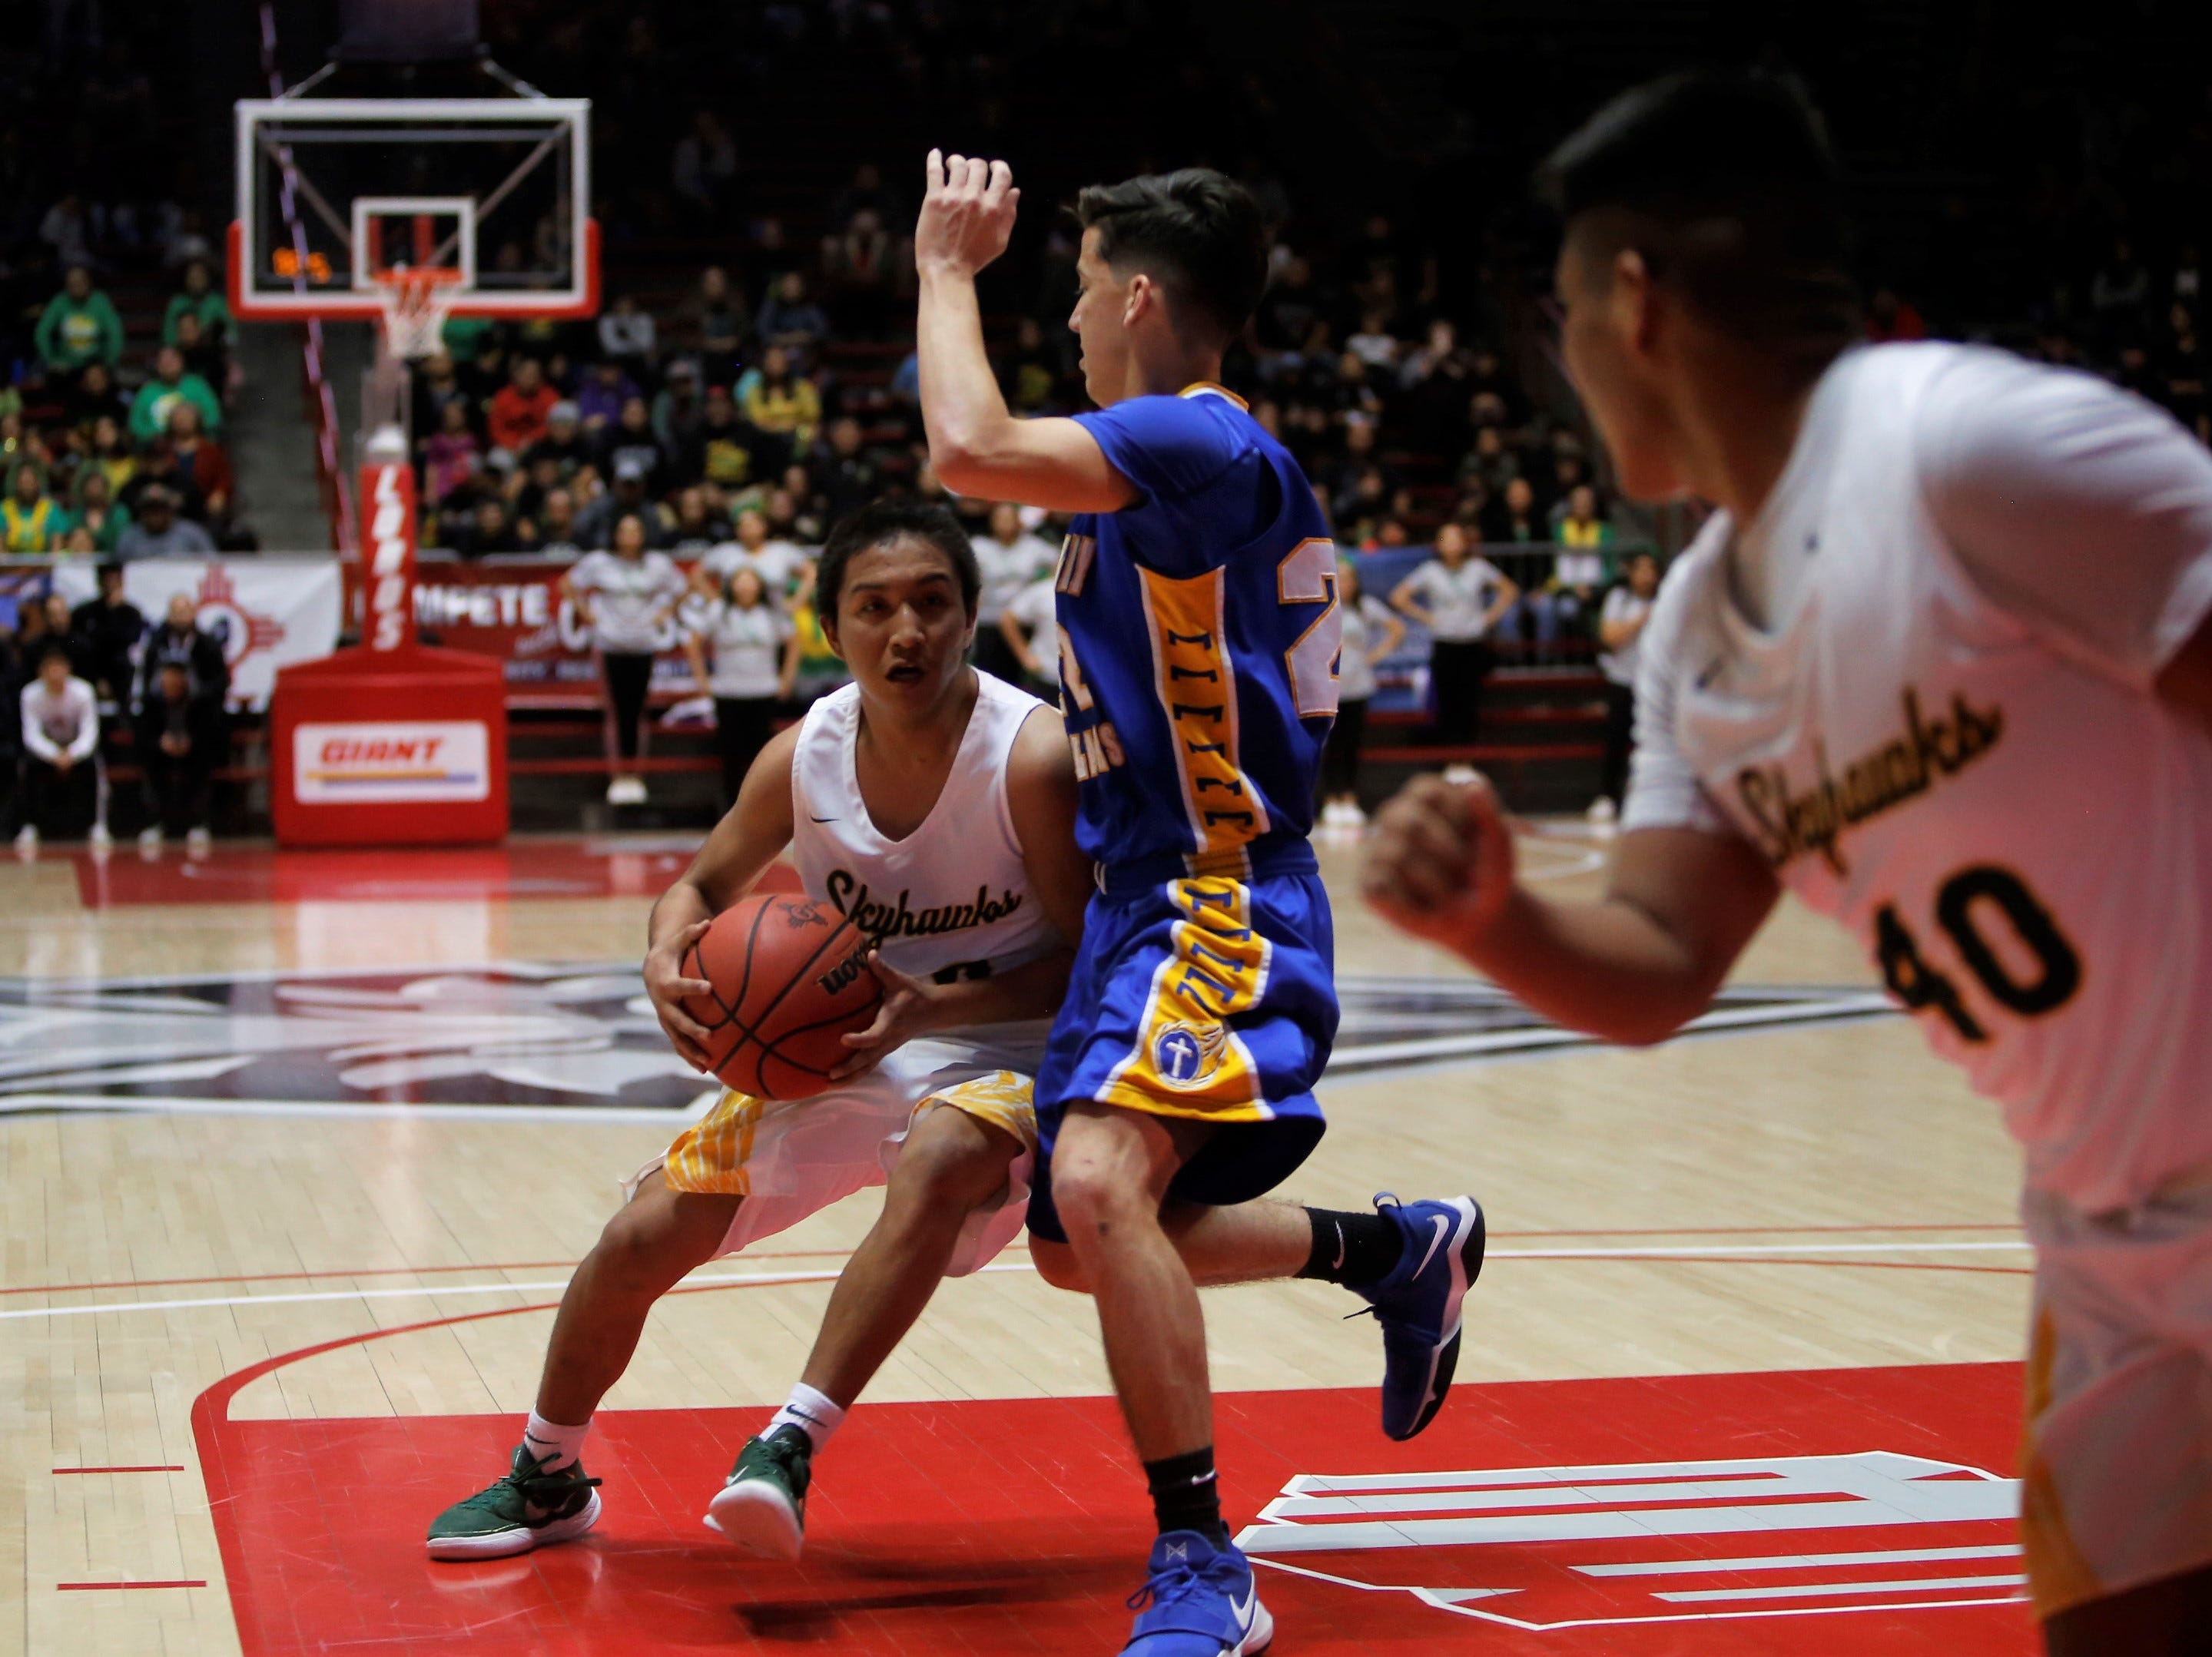 Newcomb's Deondre Begay attacks the basket against Mesilla Valley's Michael Johnson during Friday's 2A state semifinals at Dreamstyle Arena in Albuquerque.